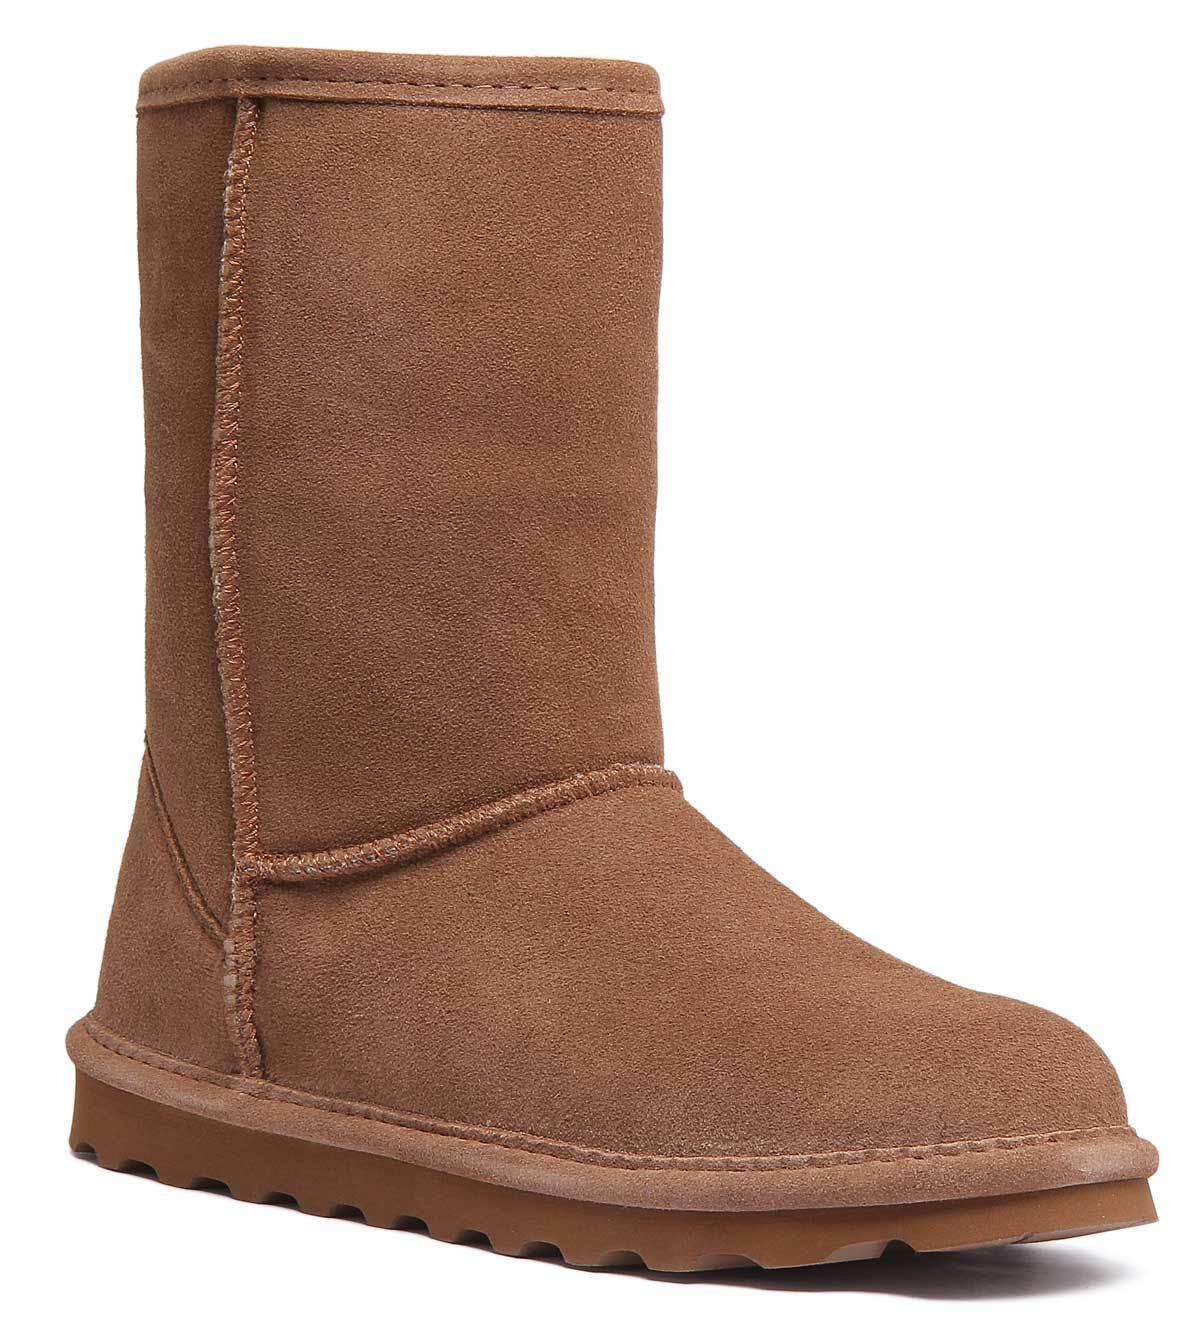 Bearpaw Elle damen Chestnut Suede Leather Ankle Stiefel UK Größe 3 - 8